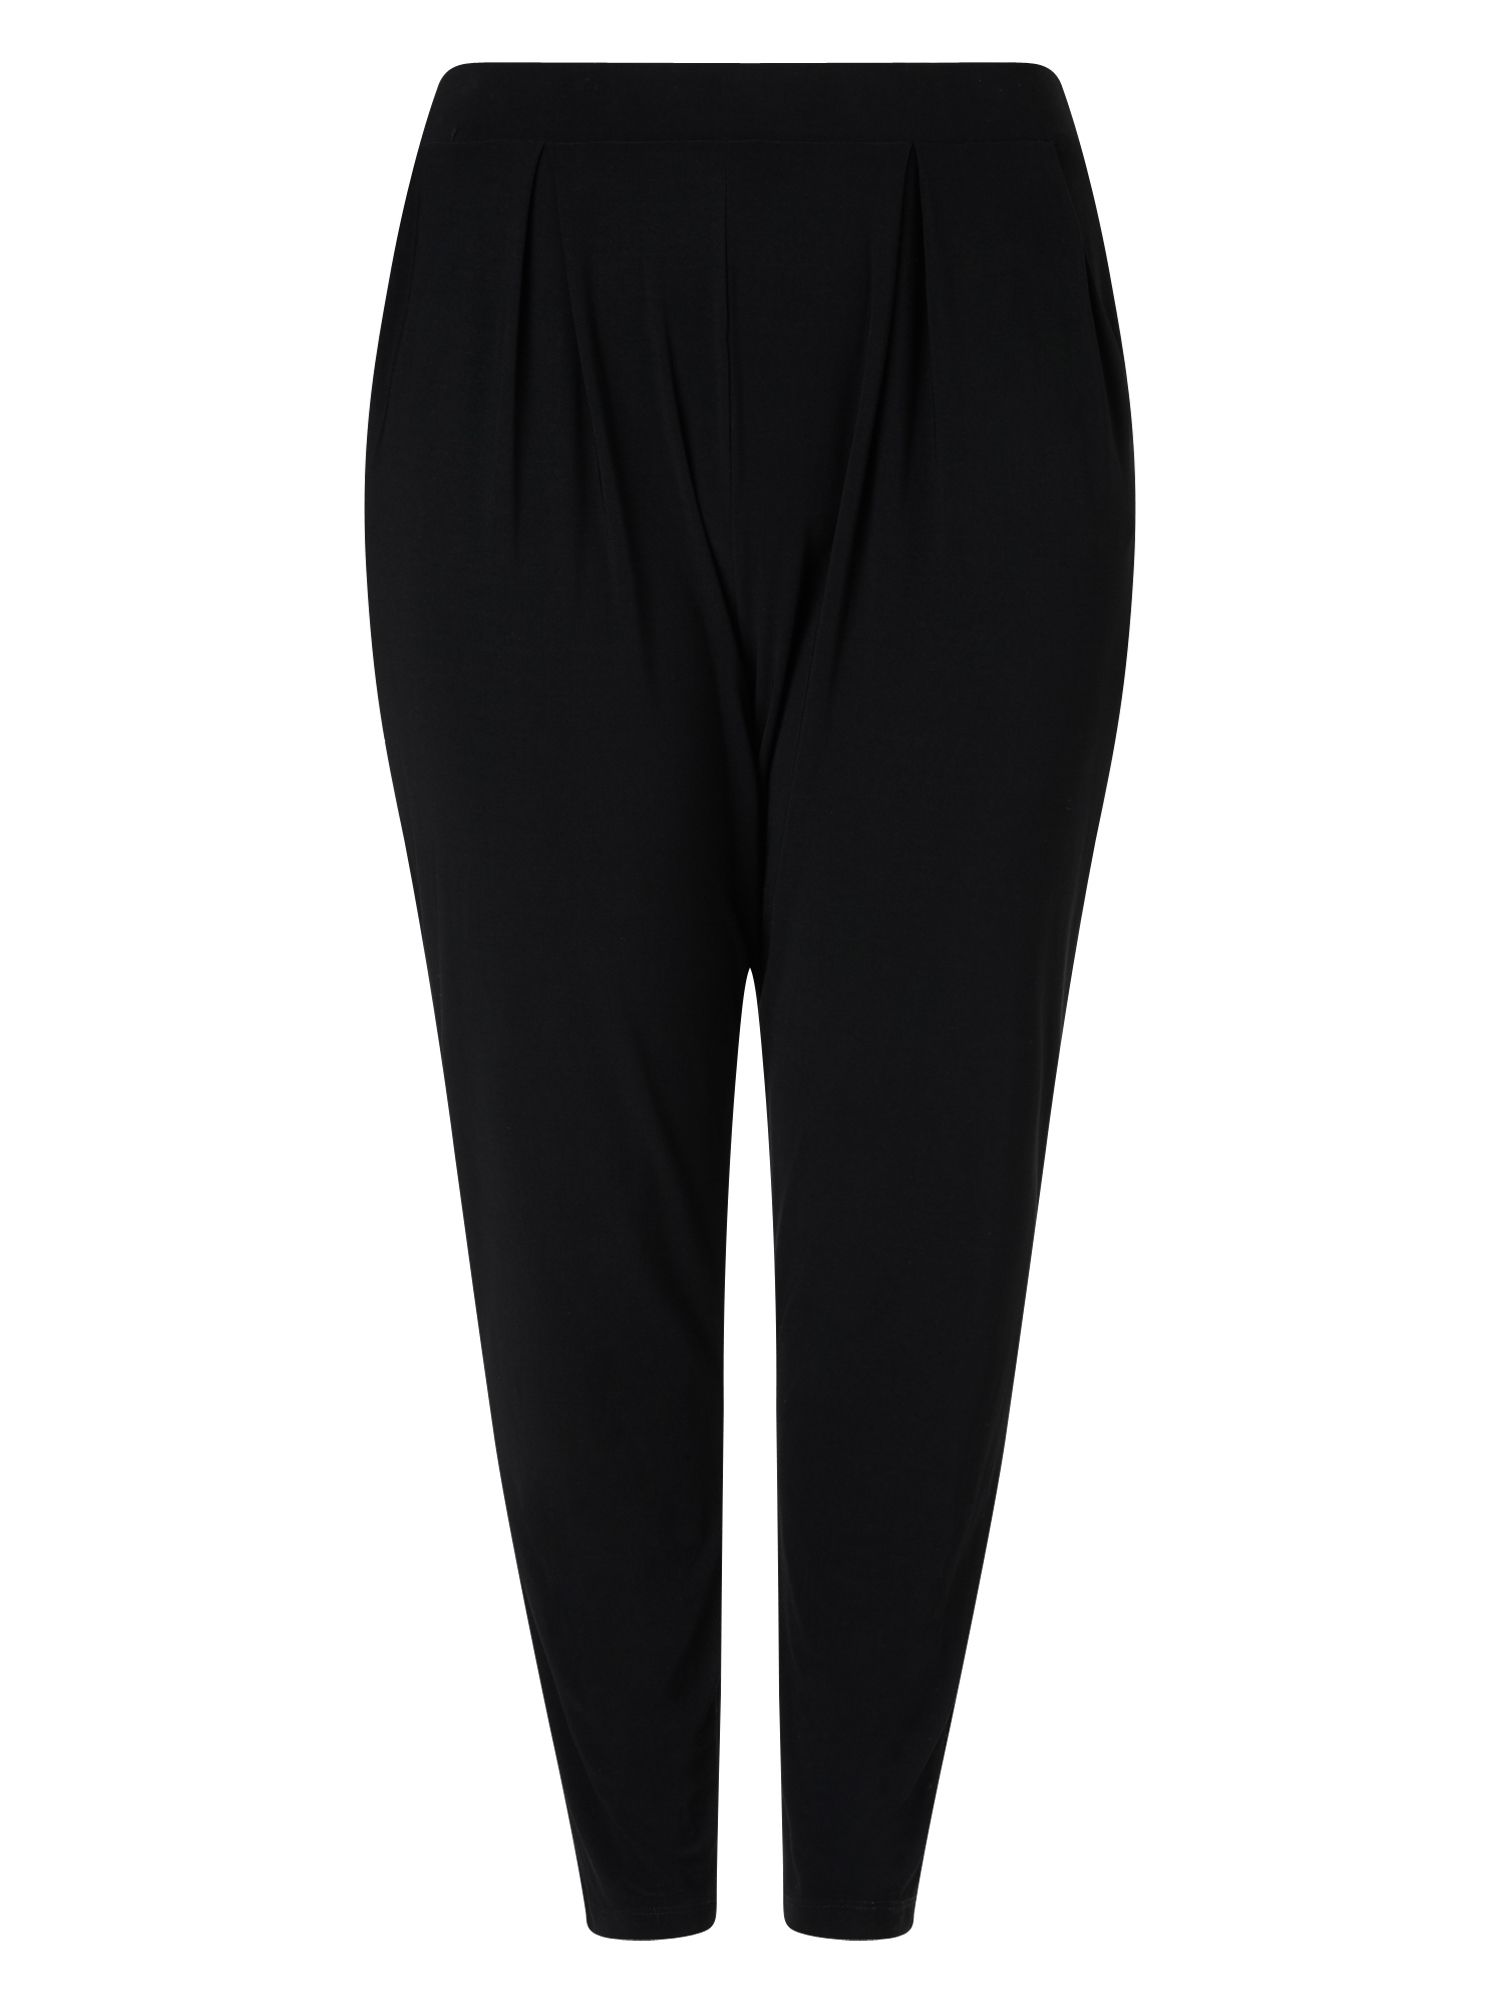 Studio 8 Jane trousers, Black